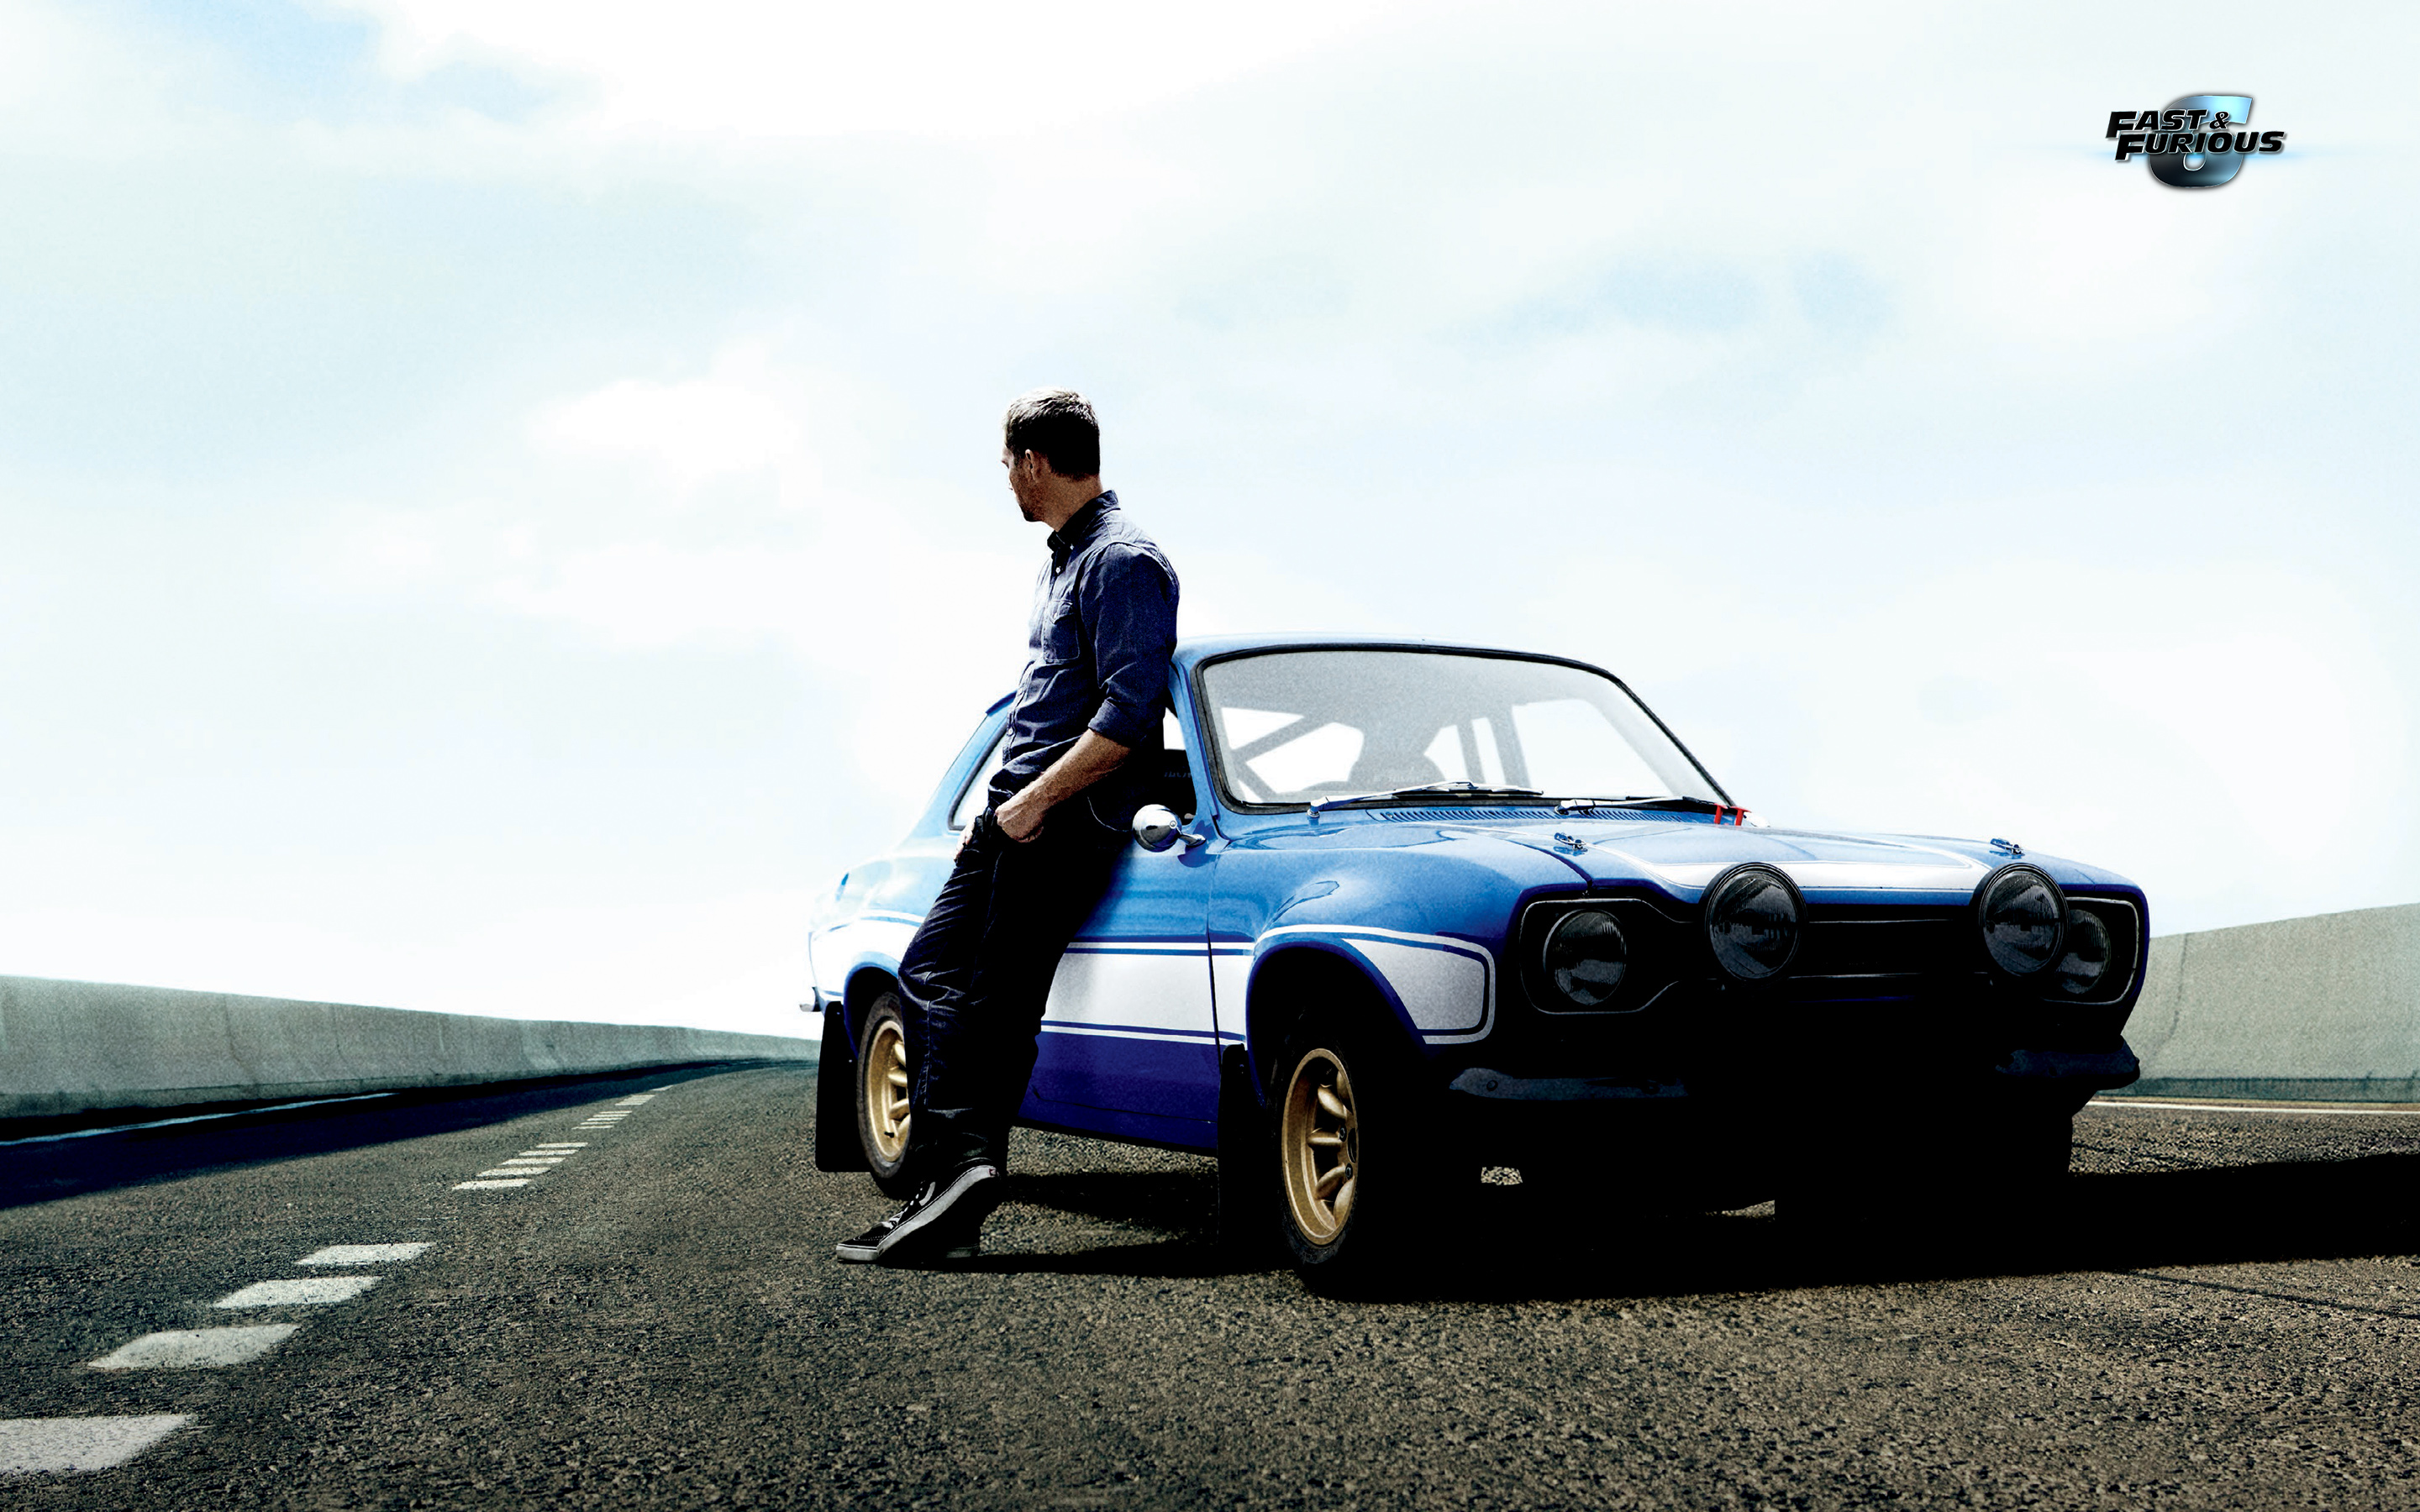 Paul Walker in Fast & Furious 6 1657.02 Kb